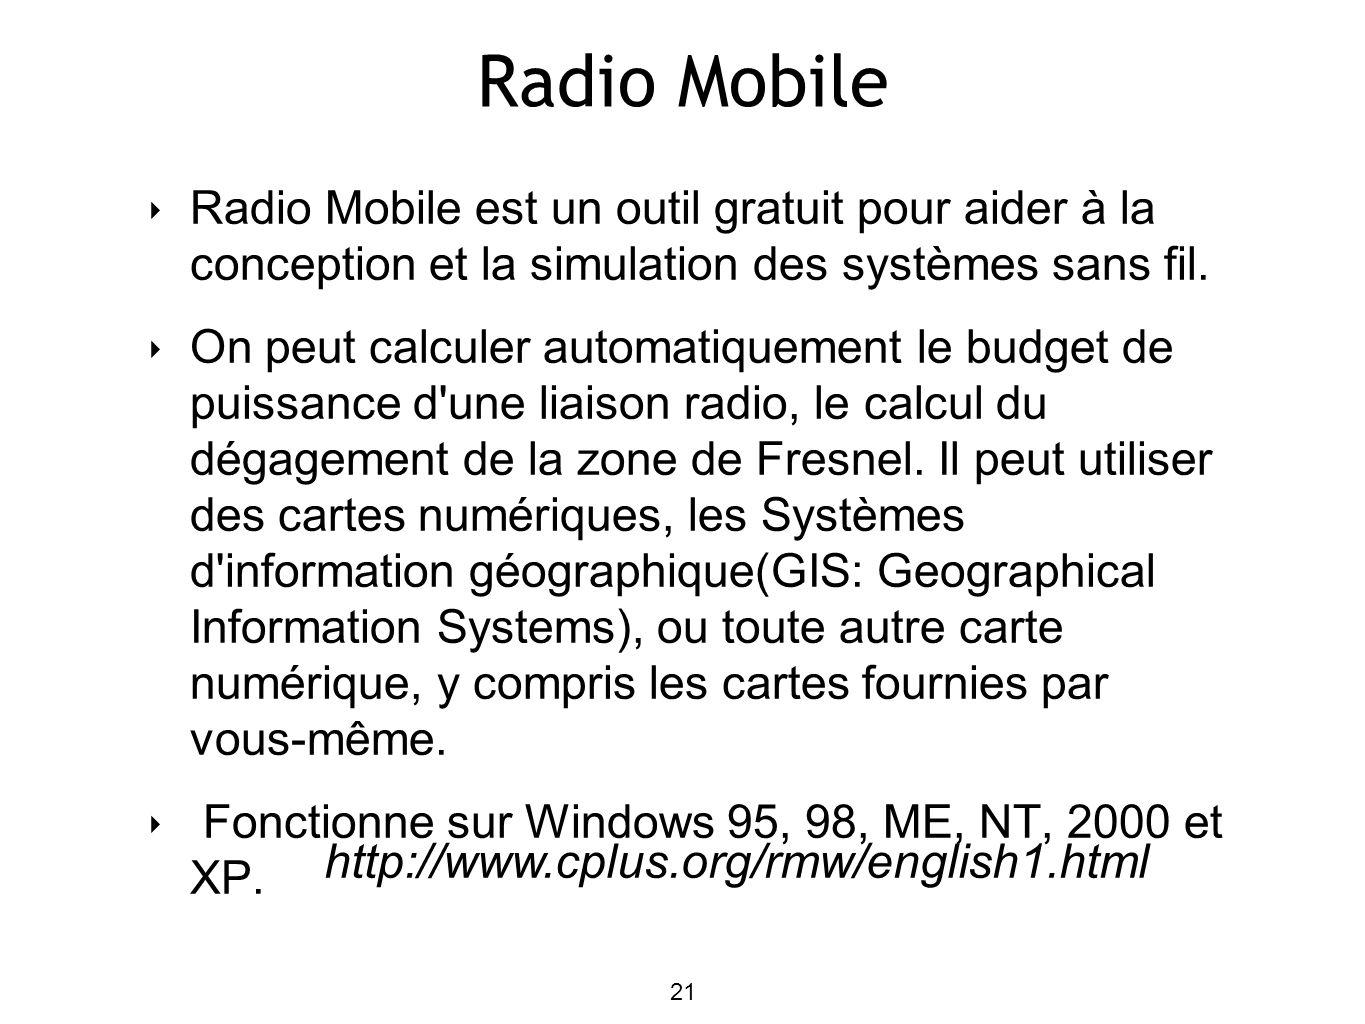 Radio Mobile http://www.cplus.org/rmw/english1.html